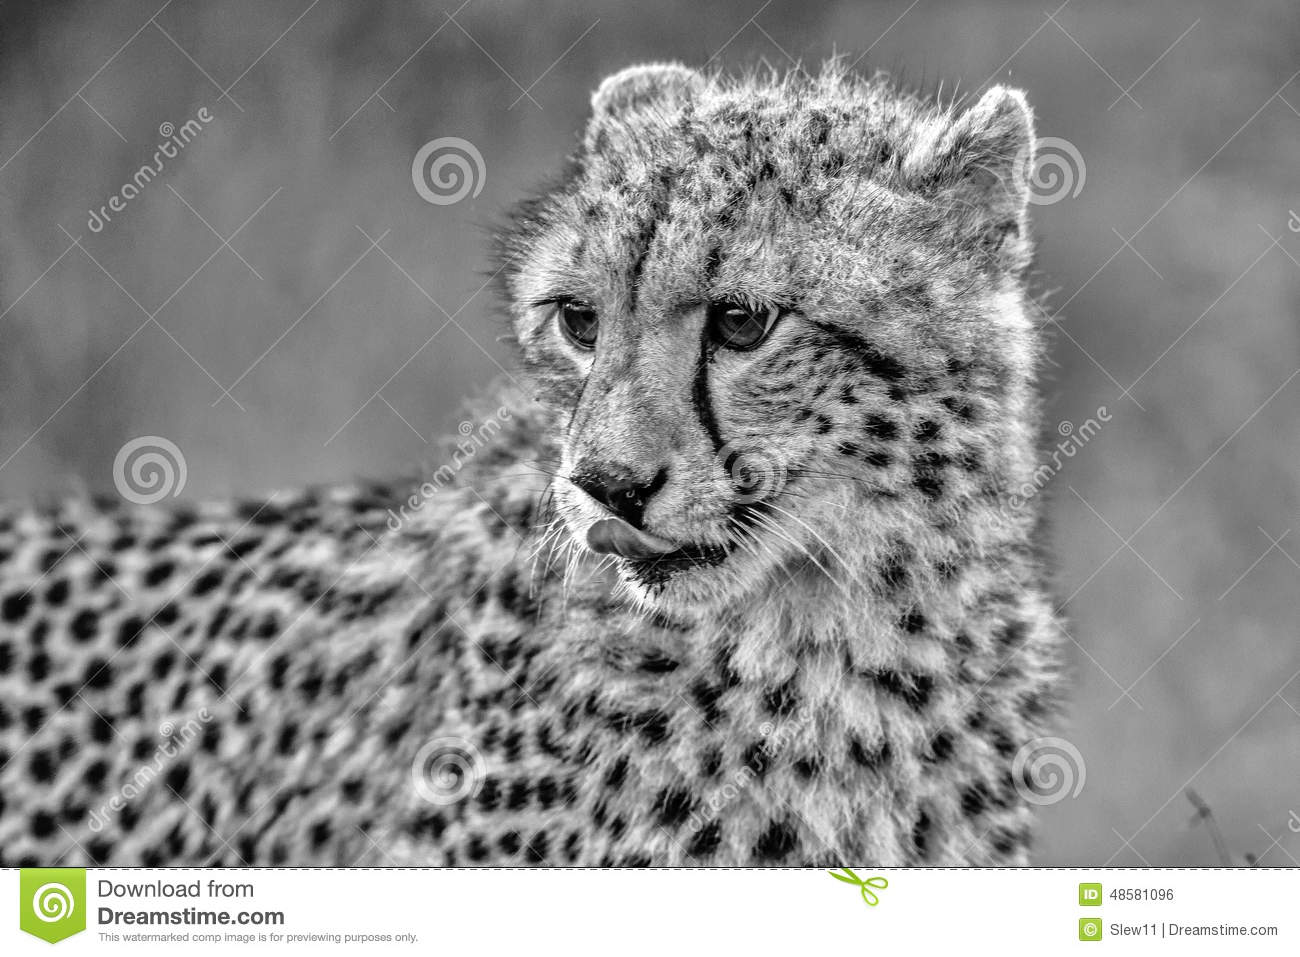 images of   Black and White Baby Cheetah in Kruger National ParkBaby Cheetah Clipart Black And White